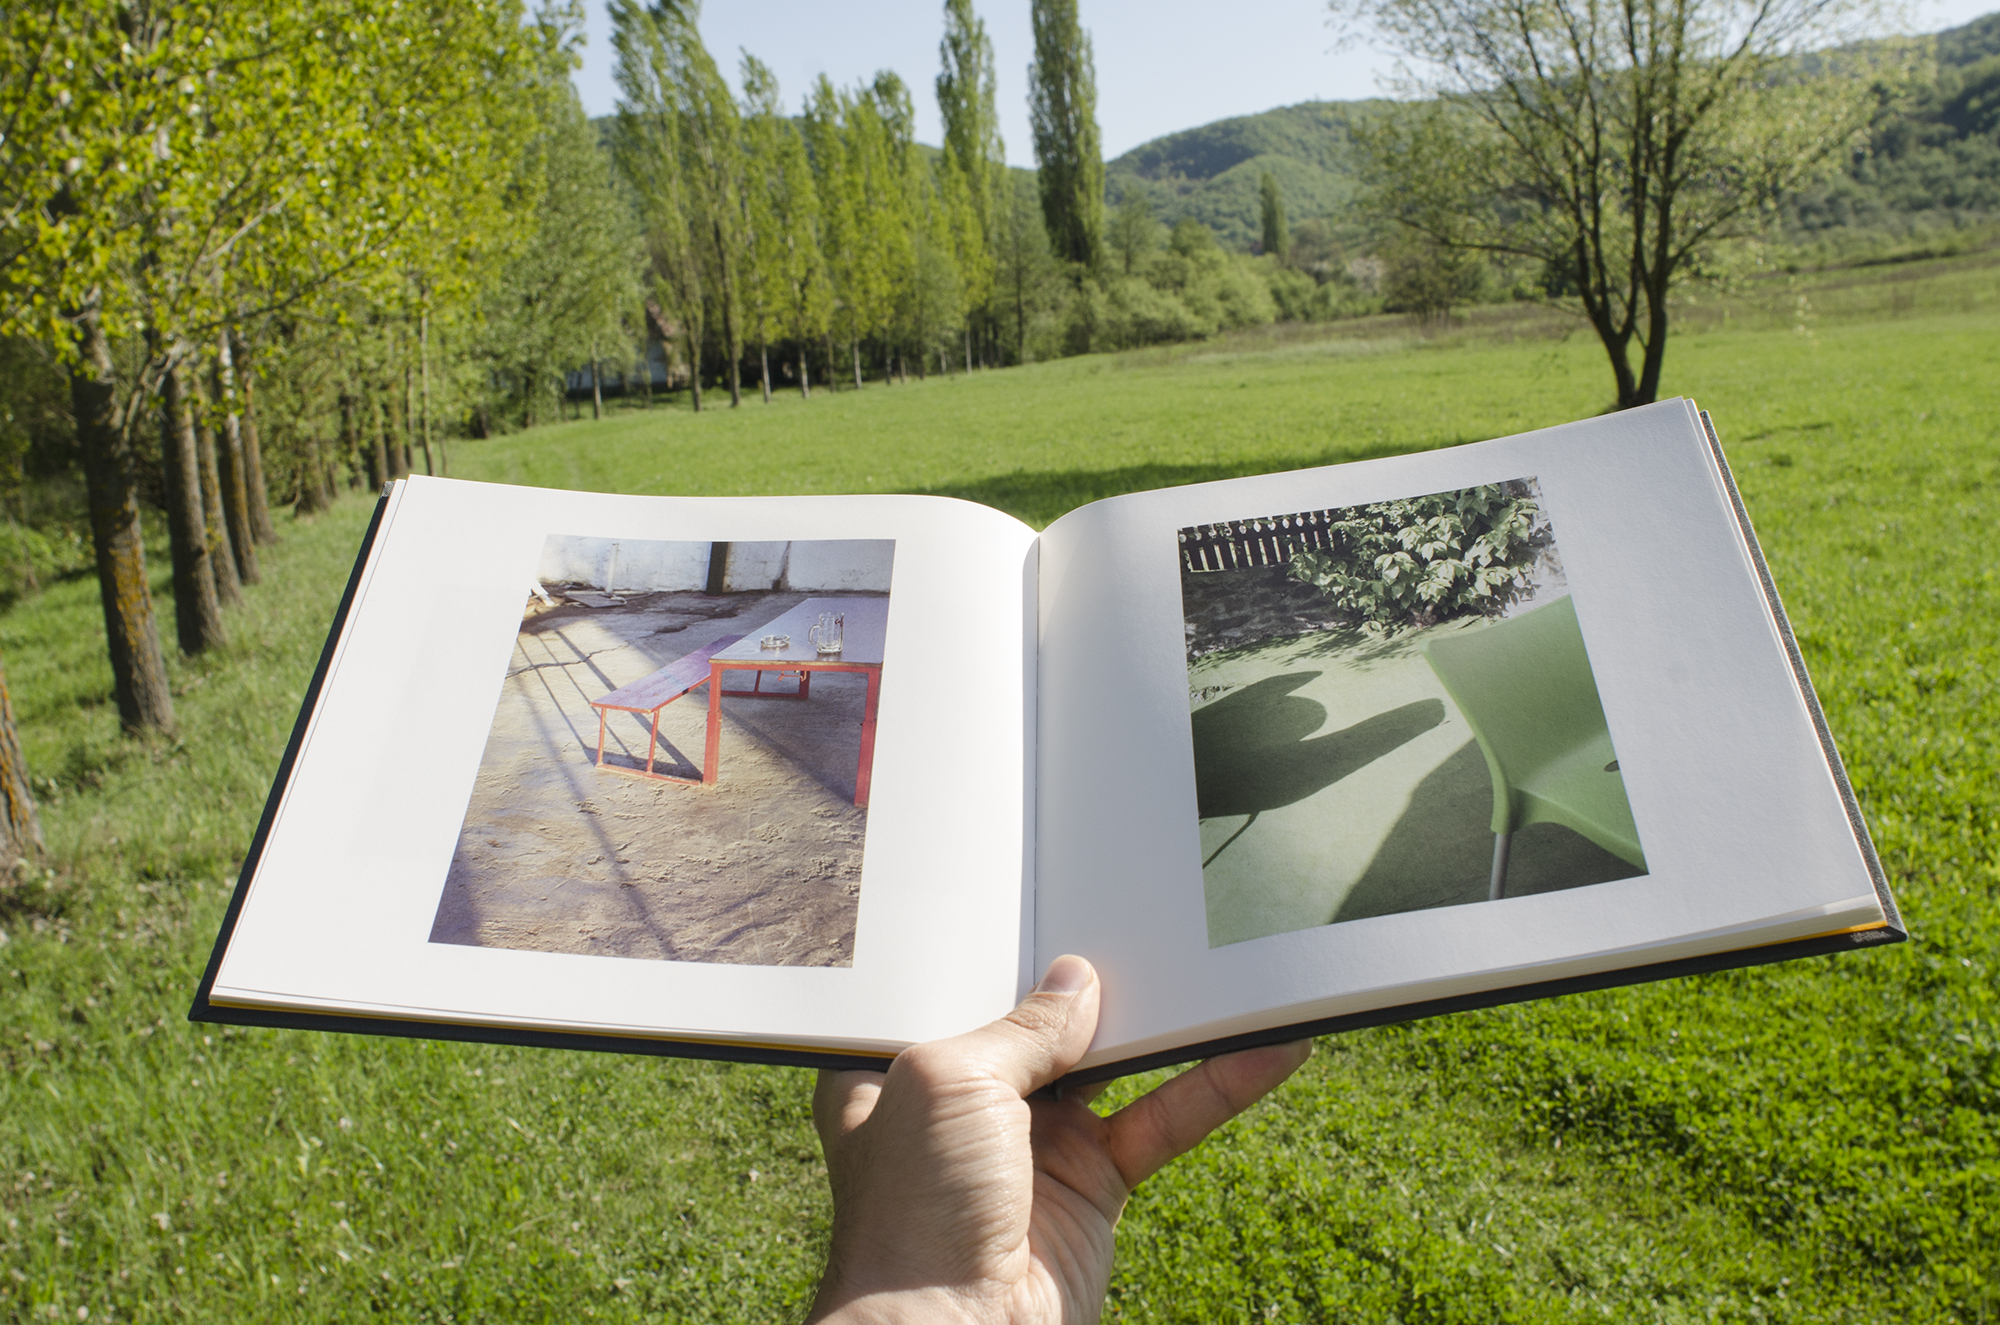 Photobook+Familiar+Place+by+artist+Ovidiu+Gordan003.jpg